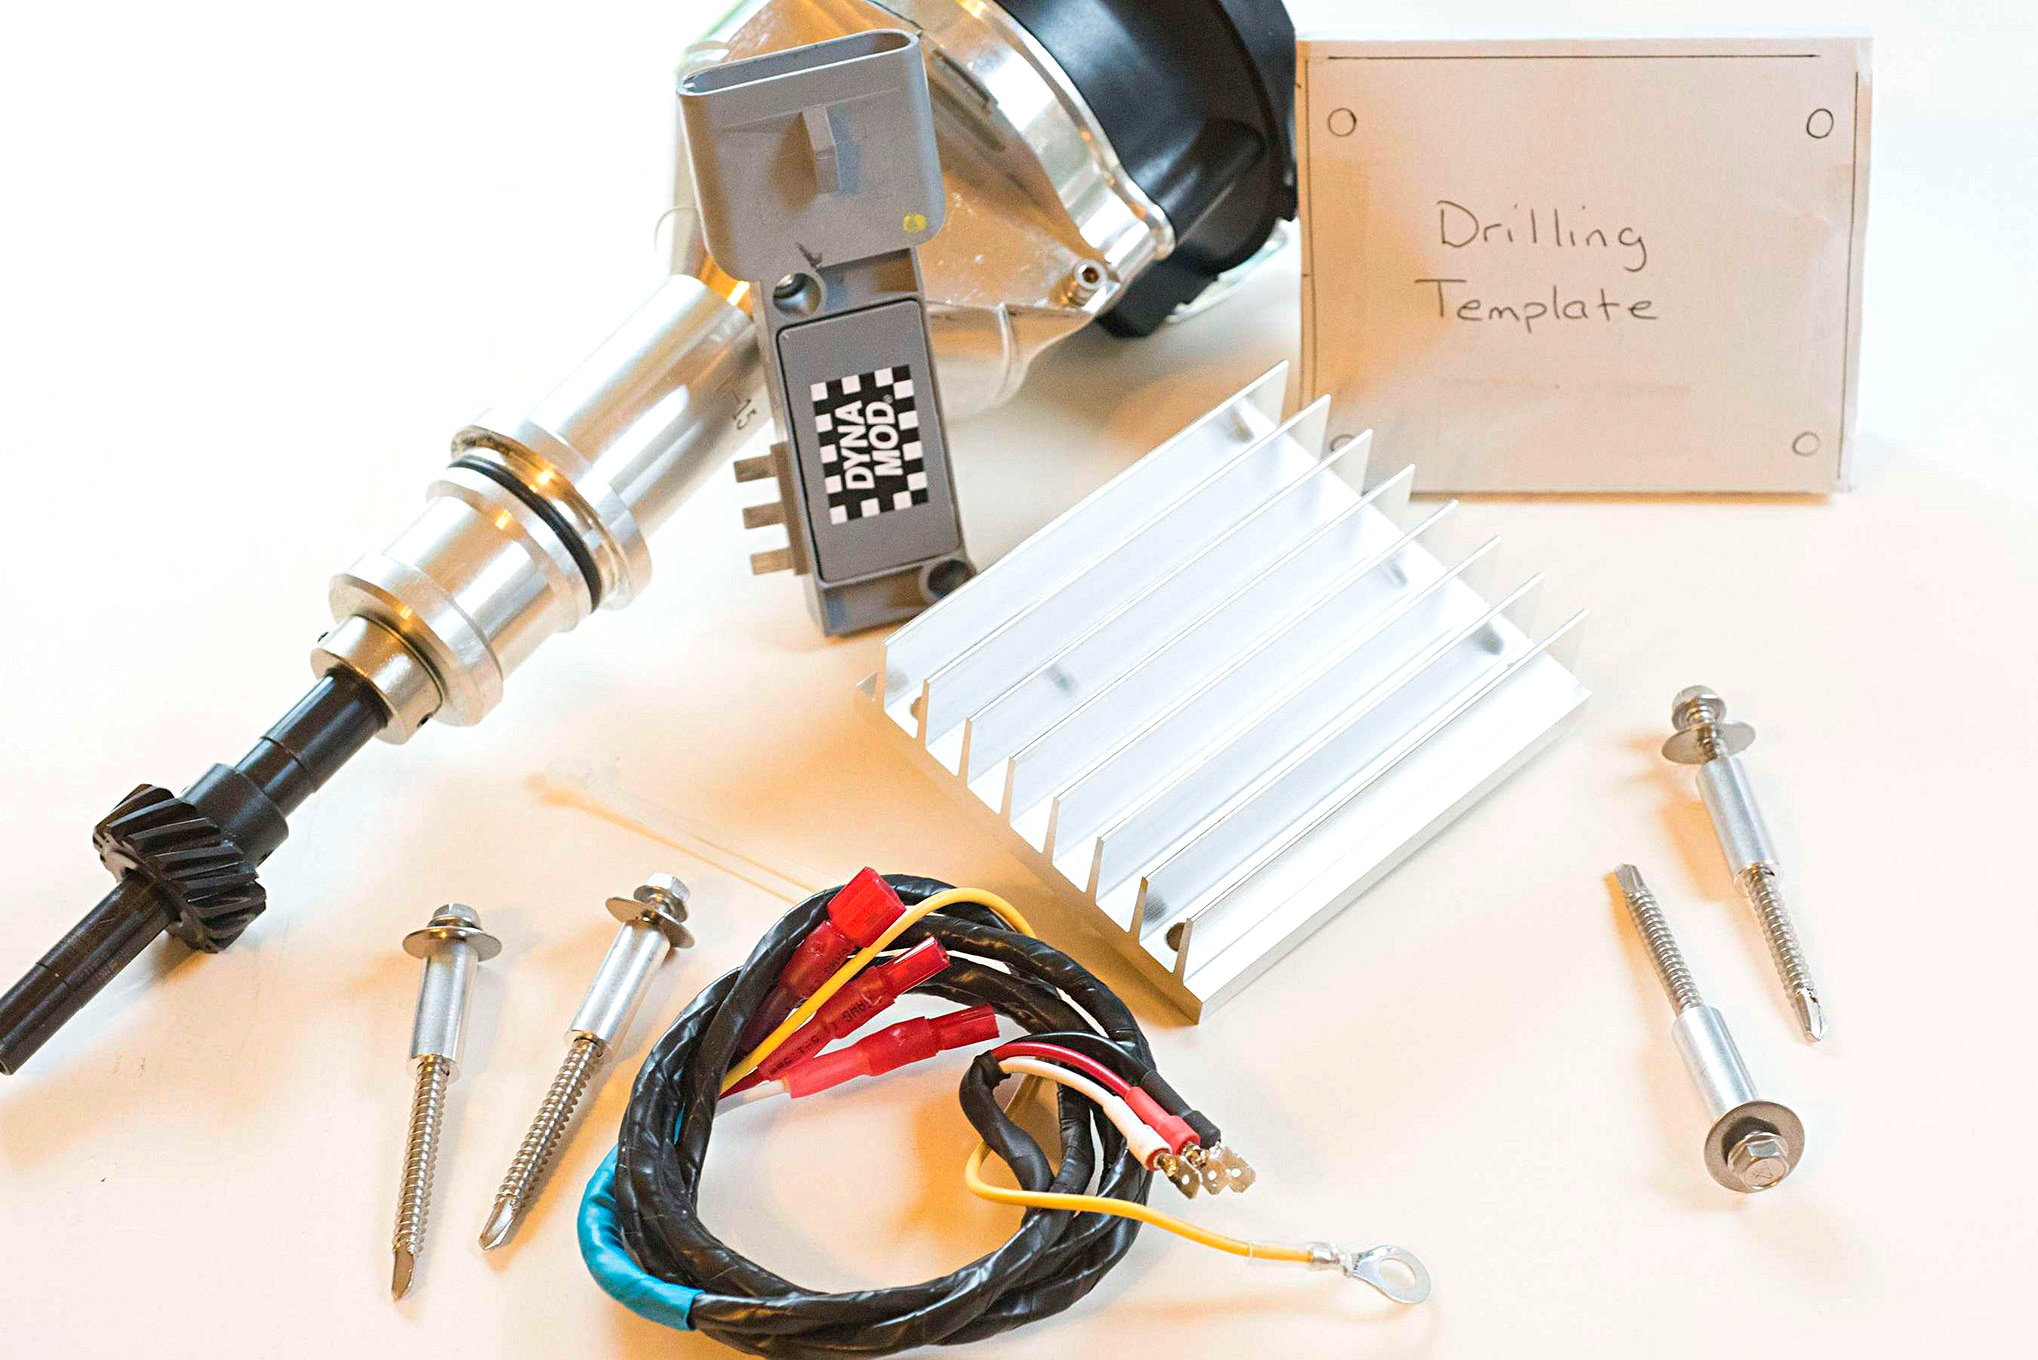 hight resolution of mccully racing motor s tfi relocation kit comes with a 3 foot shielded wiring harness heat sink